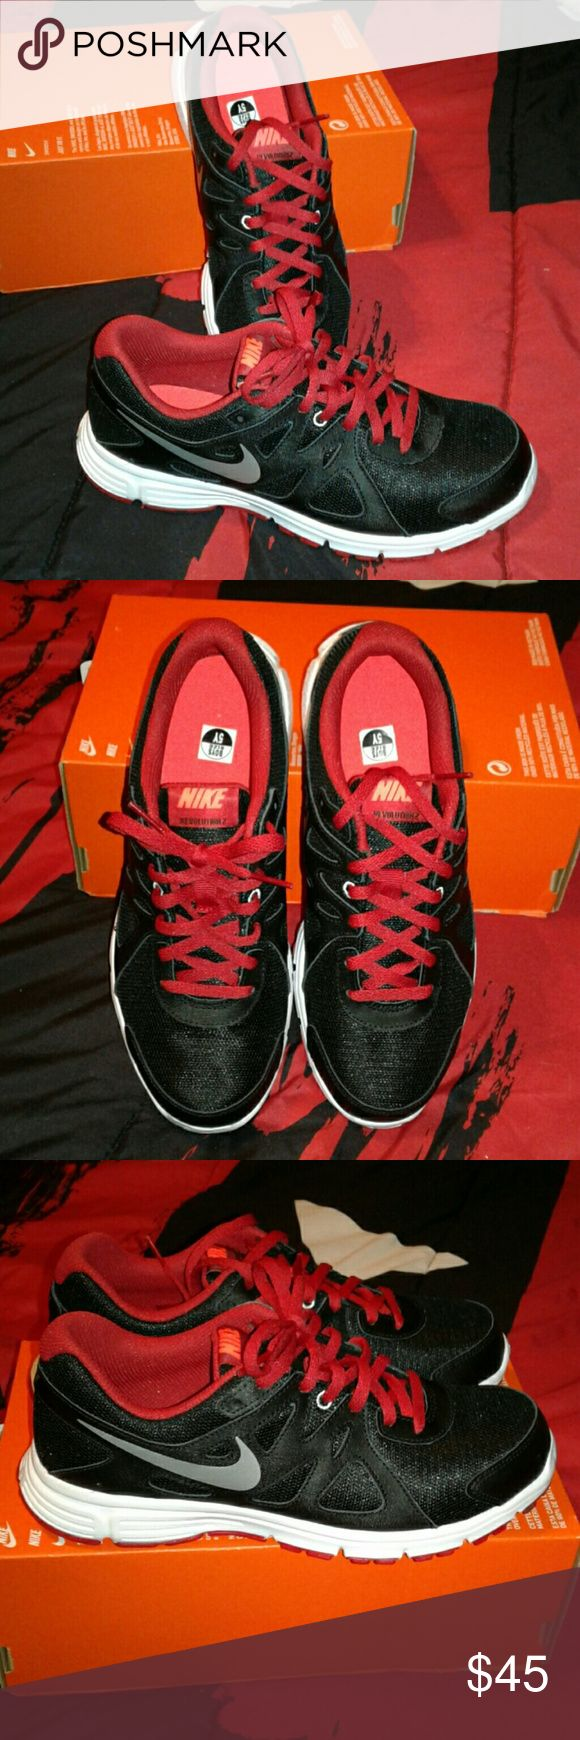 NWT Nike Revolution 2 tennis NWT black and red NIKE Revolution 2 tennis shoes, youth size 5 which equals a women's size 6, great shoes for the gym! Will ship shoes in box without lid. Nike Shoes Sneakers